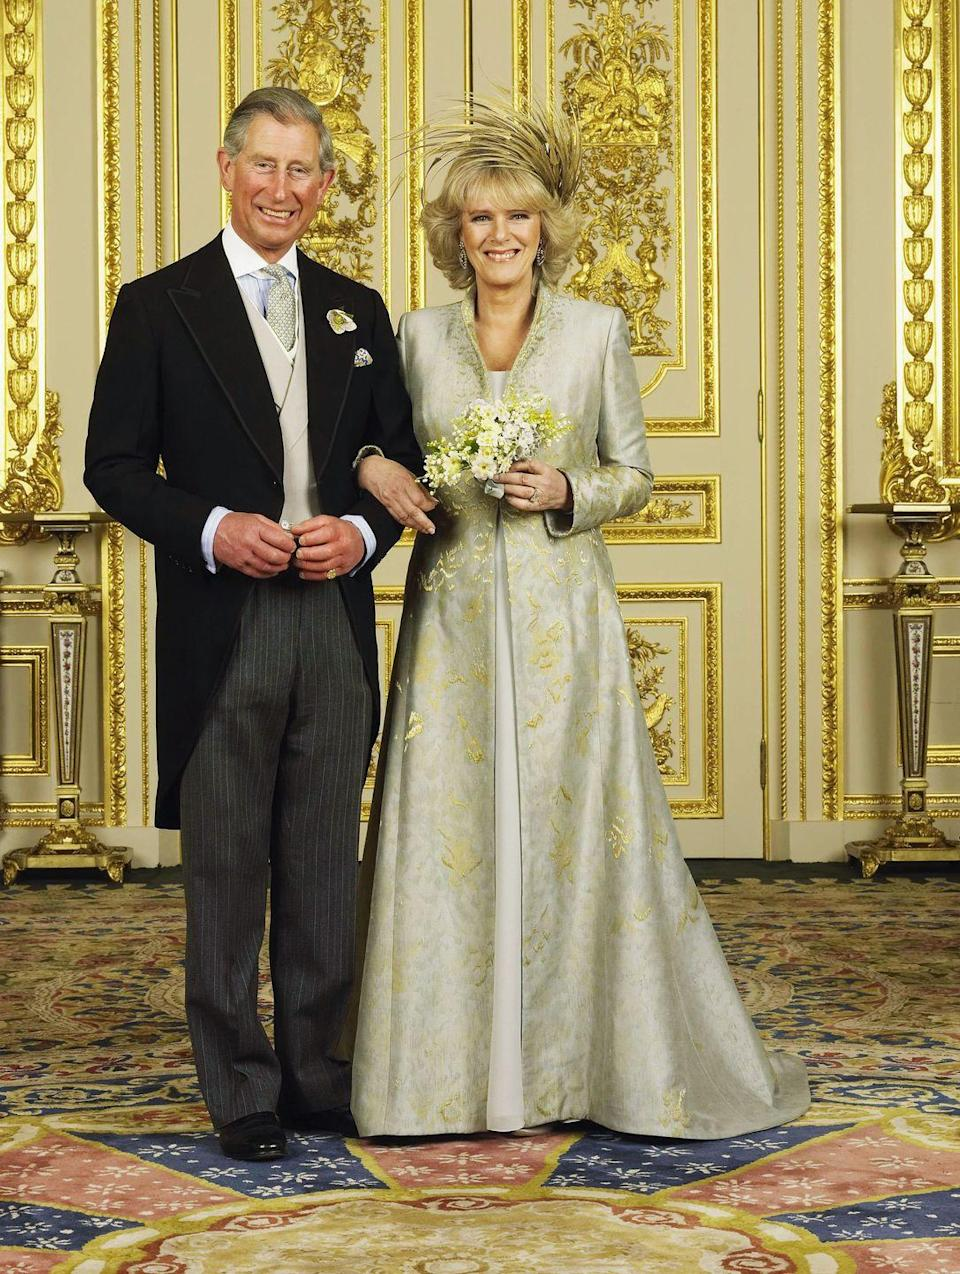 <p>After the civil ceremony, Camilla had a full wardrobe change. Her second look featured an unusual gold headpiece, which resembled stalks of wheat.</p>